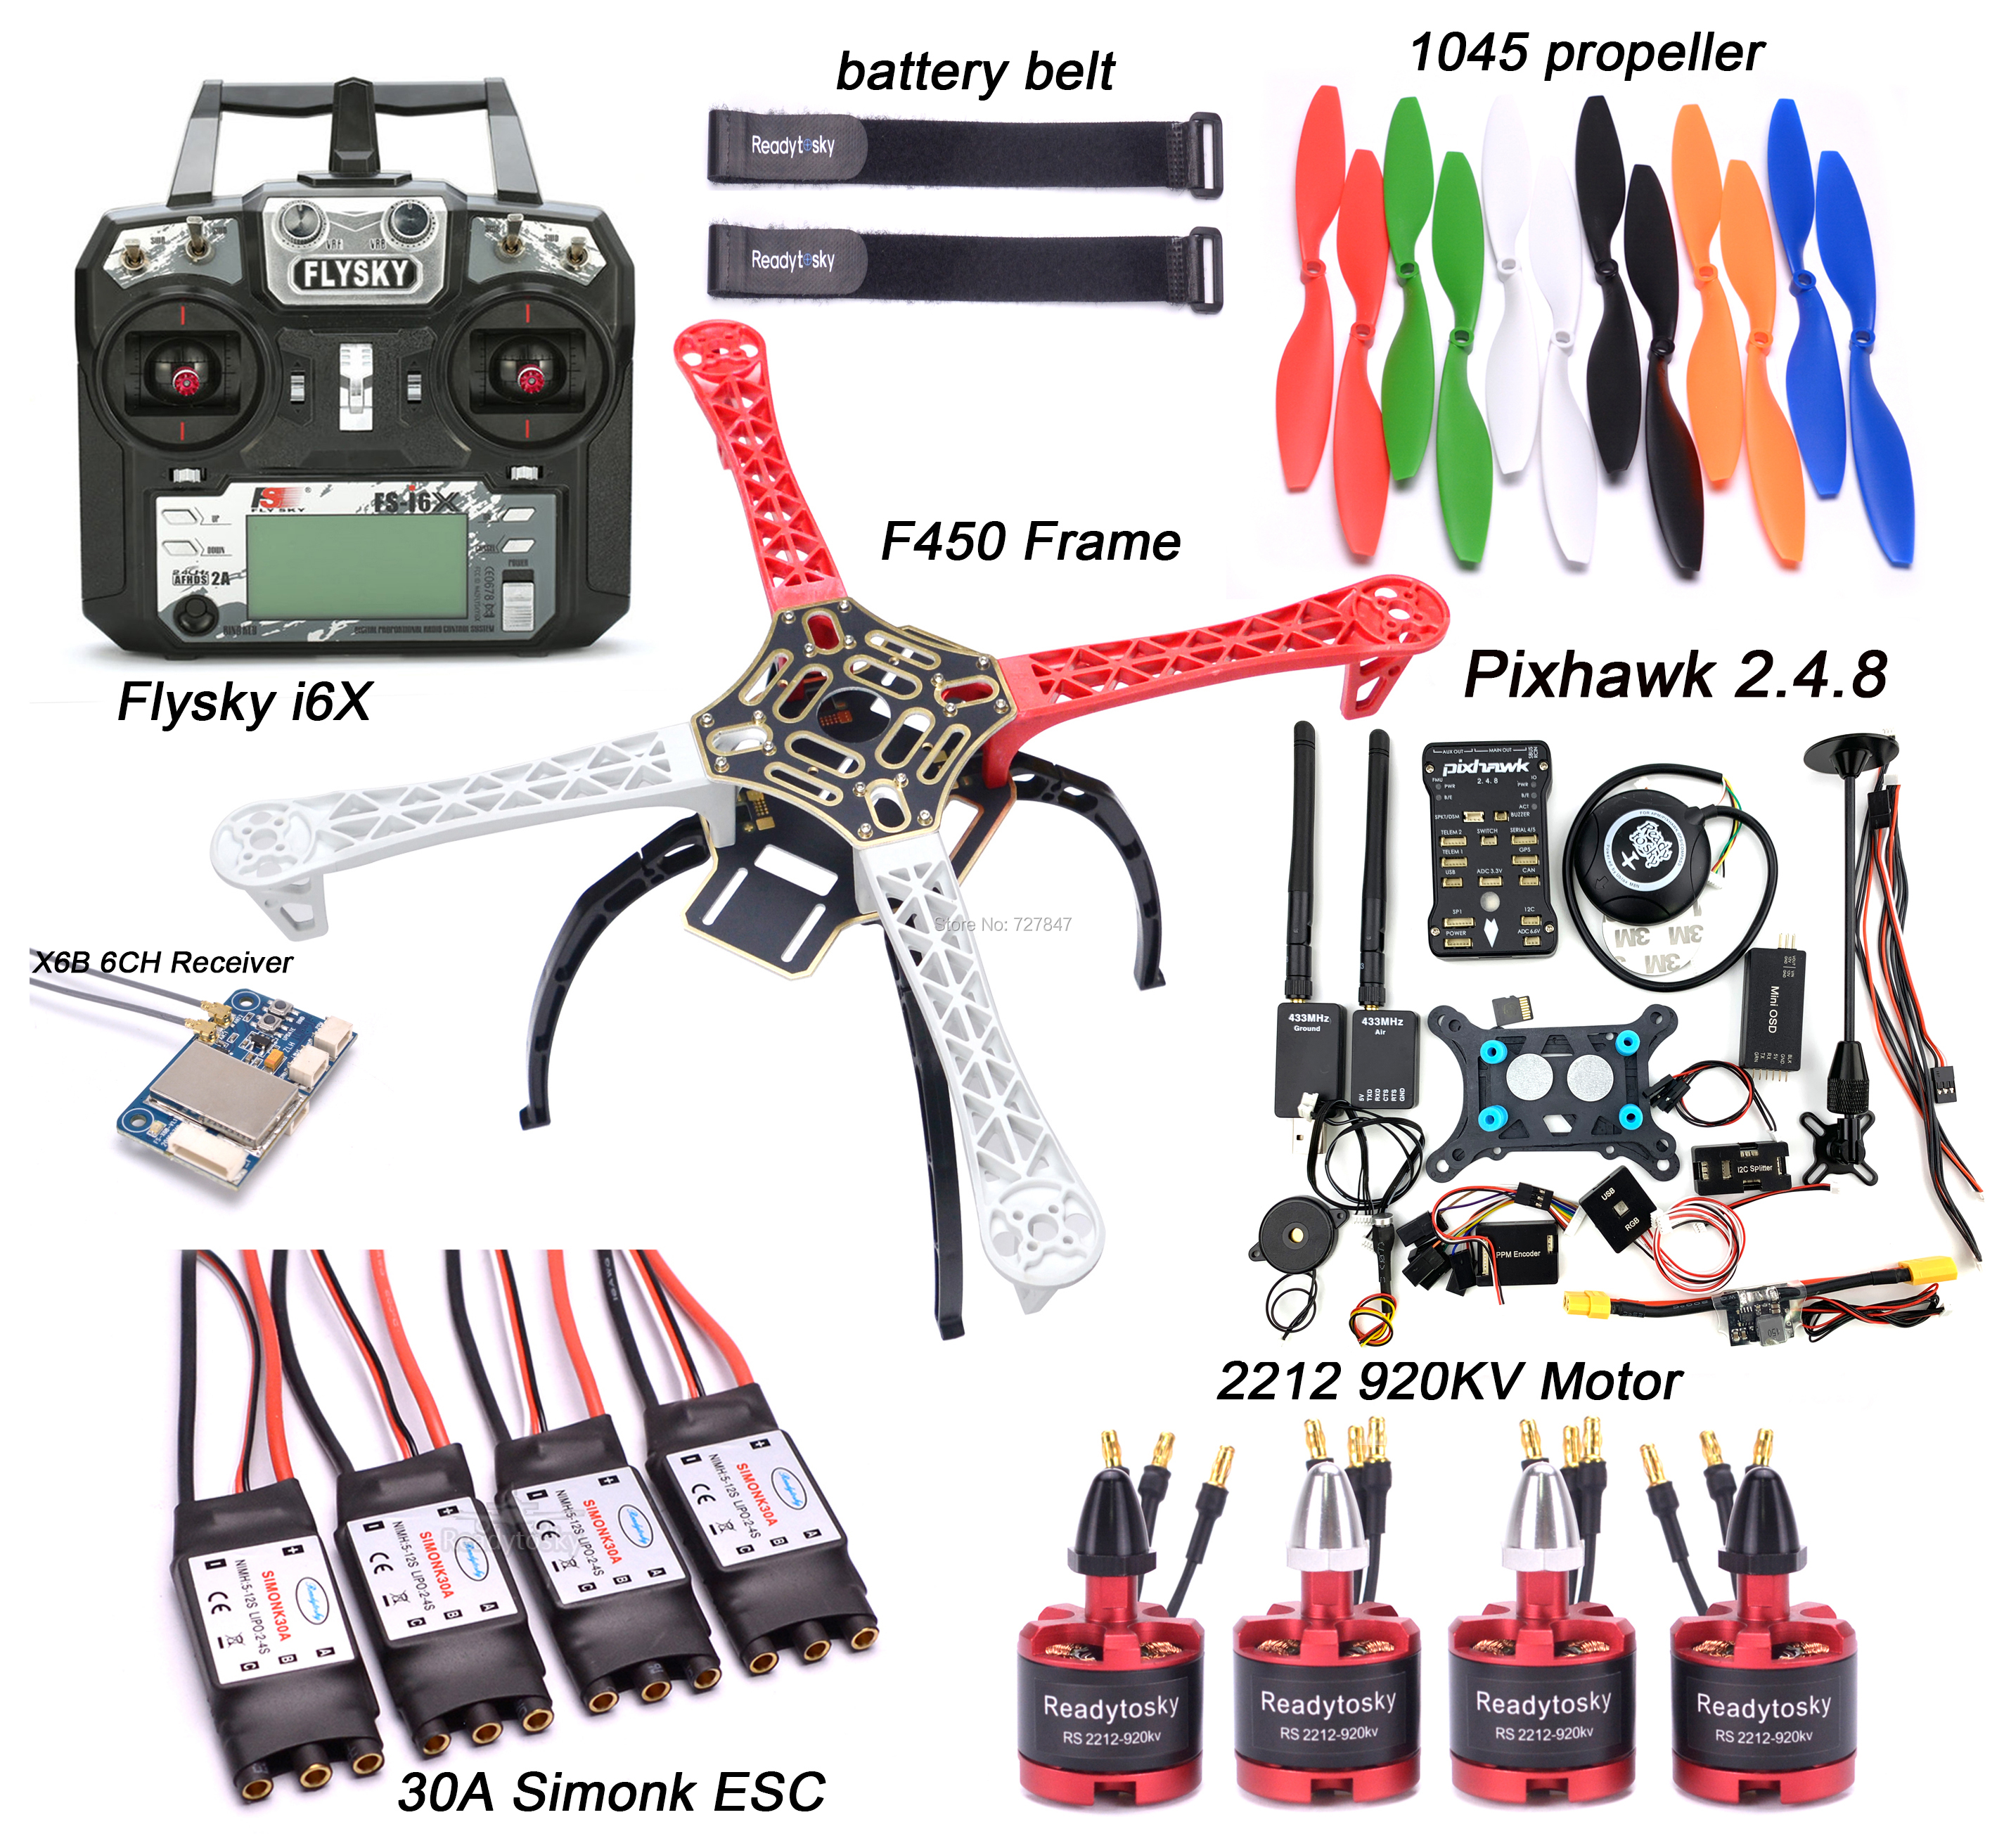 F450 450mm Quadcopter Frame Kit PIXHAWK 2.4.8 Flight control M8N GPS 30A Simonk Brushless ESC 2212 920KV Motor Flysky I6X + X6B-in Parts & Accessories from Toys & Hobbies    1